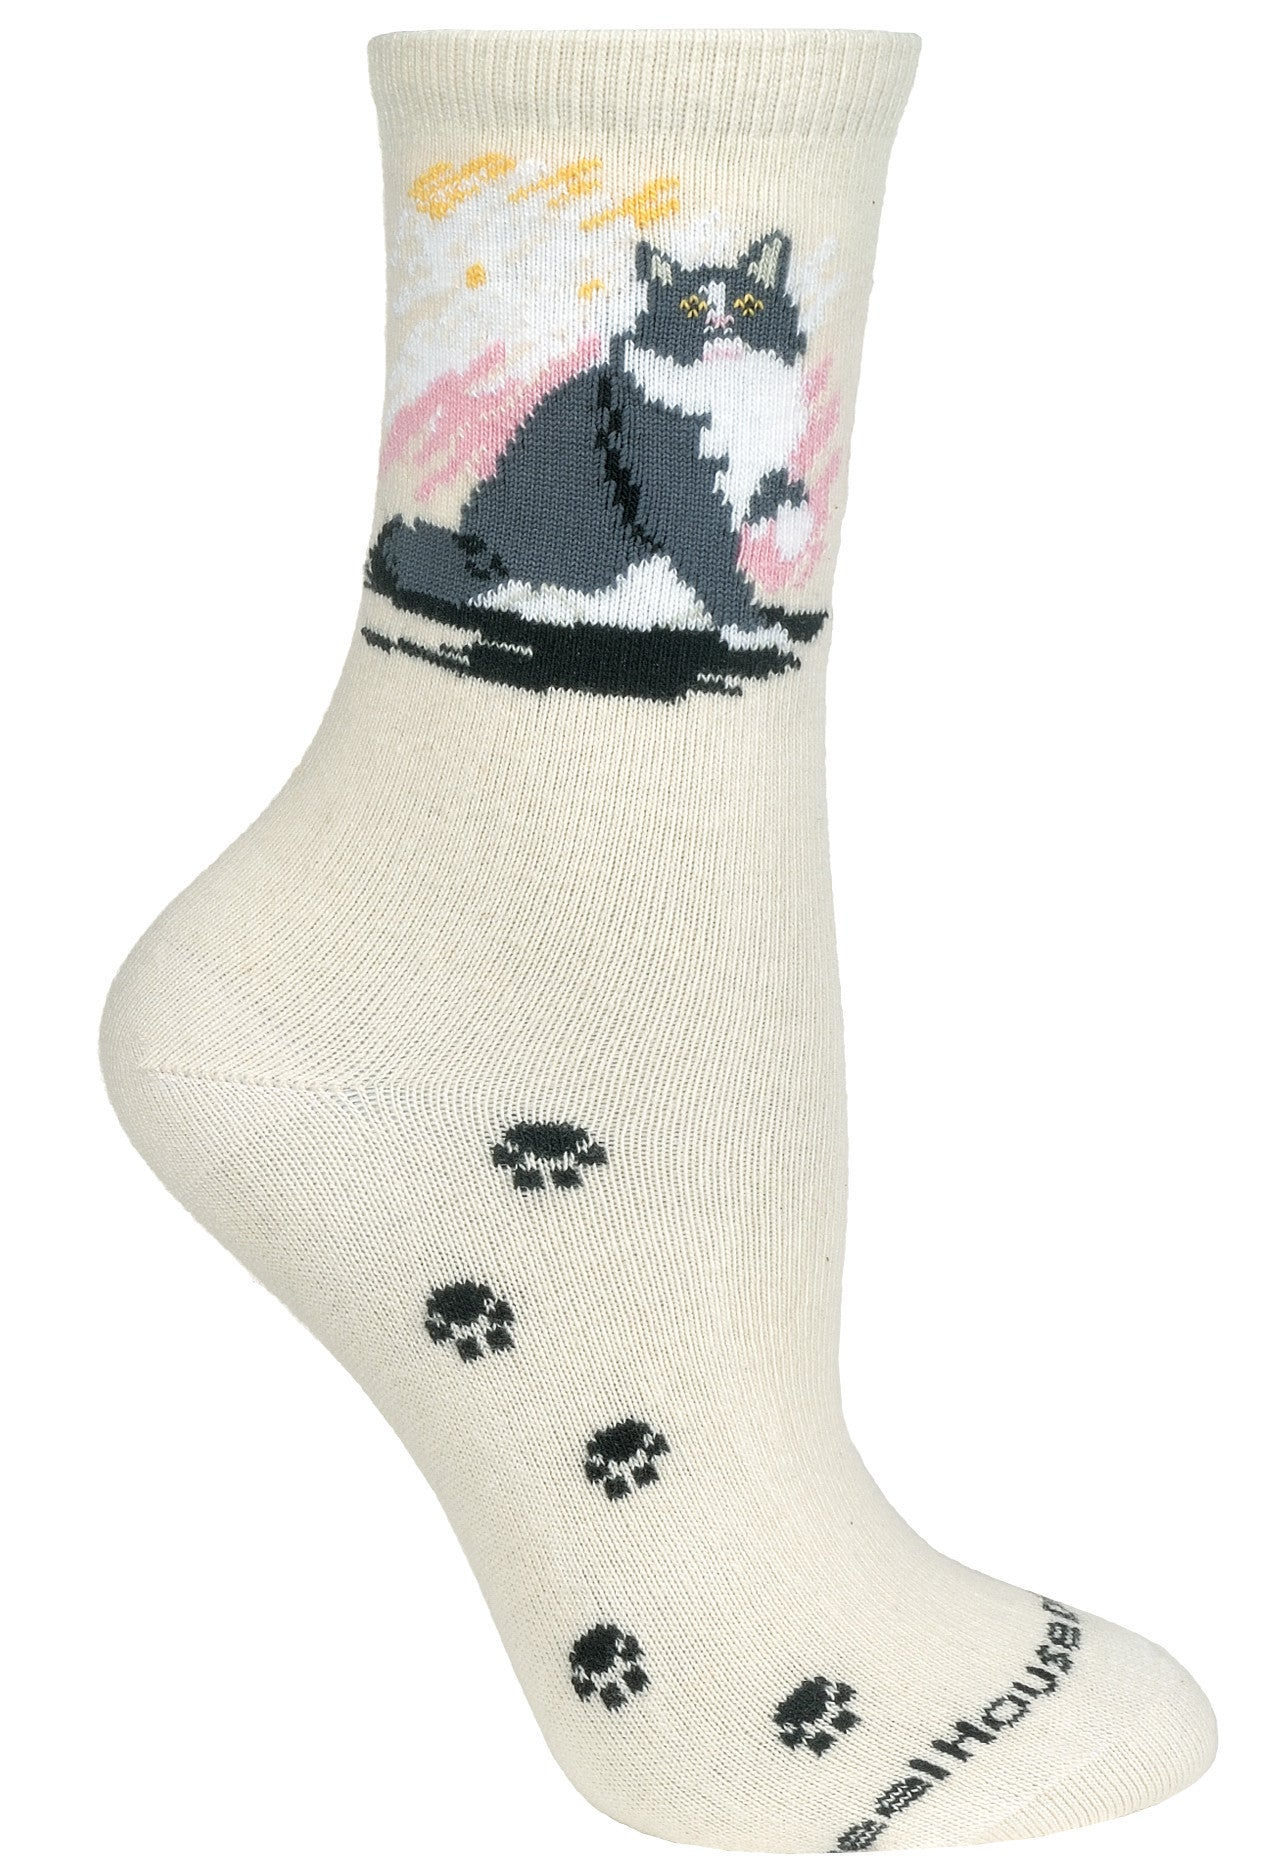 Ragamuffin Cat Crew Socks on Natural Socks